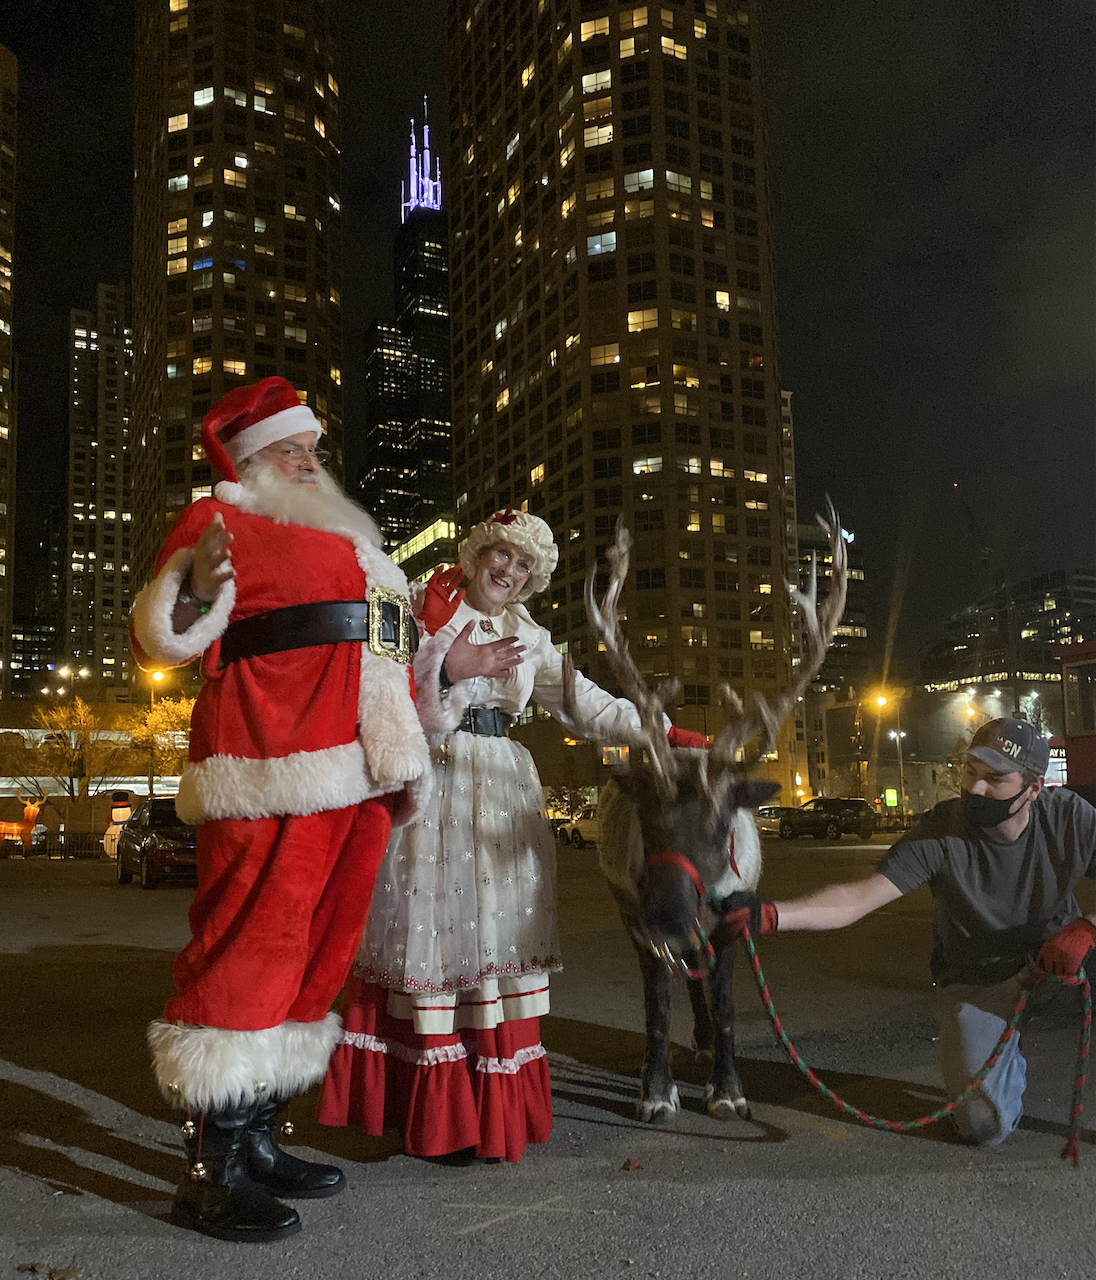 People dressed as Santa and Mrs. Clause stand in front of a downtown skyline at night.